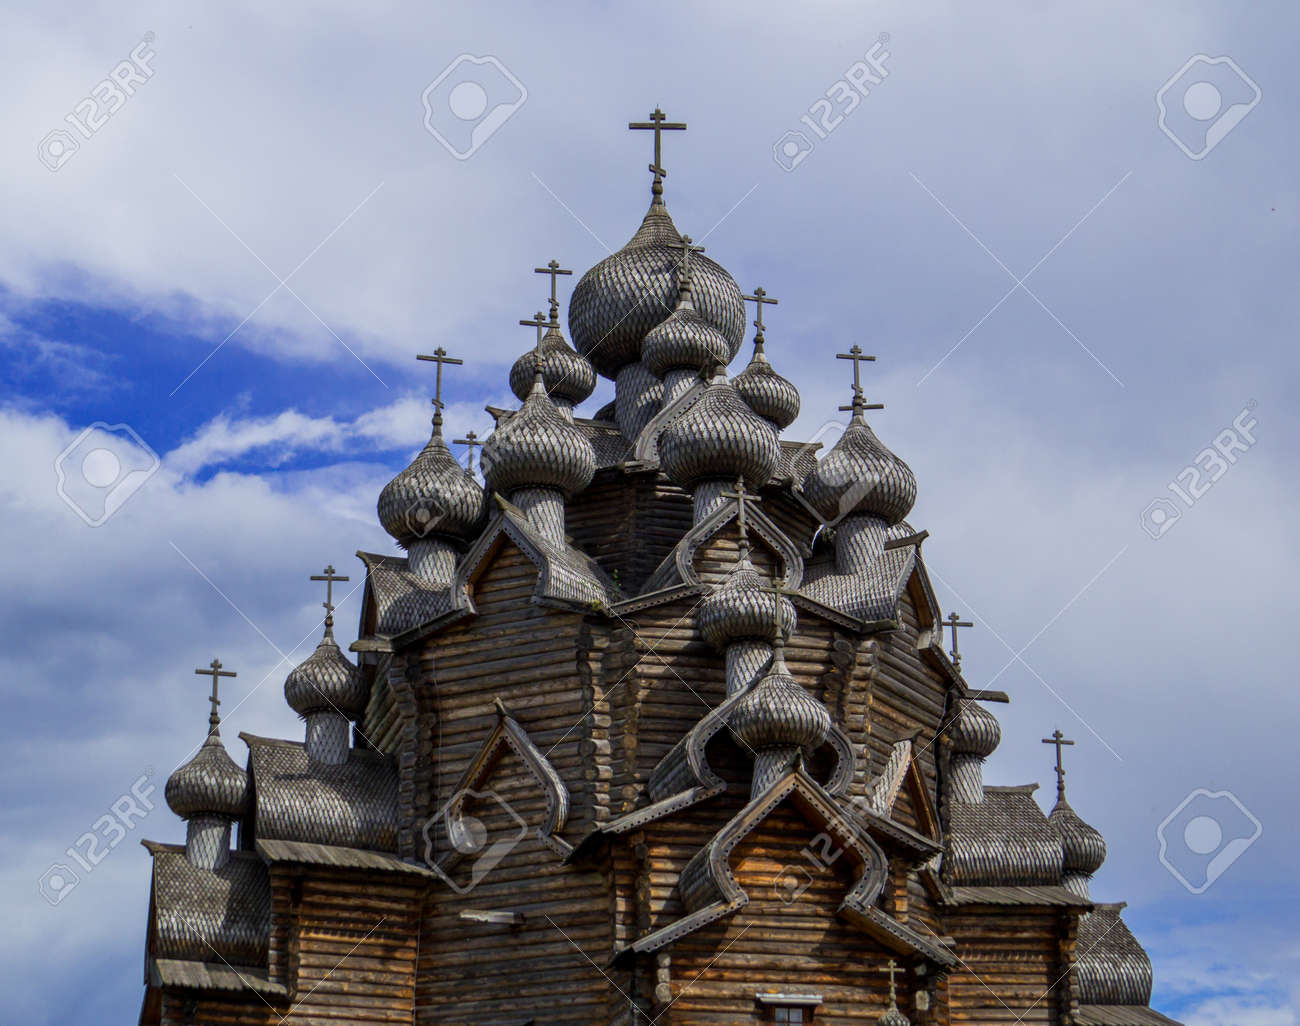 View of the wooden Church of the Intercession of the Holy Virgin in St. Petersburg, Russia - 151391707